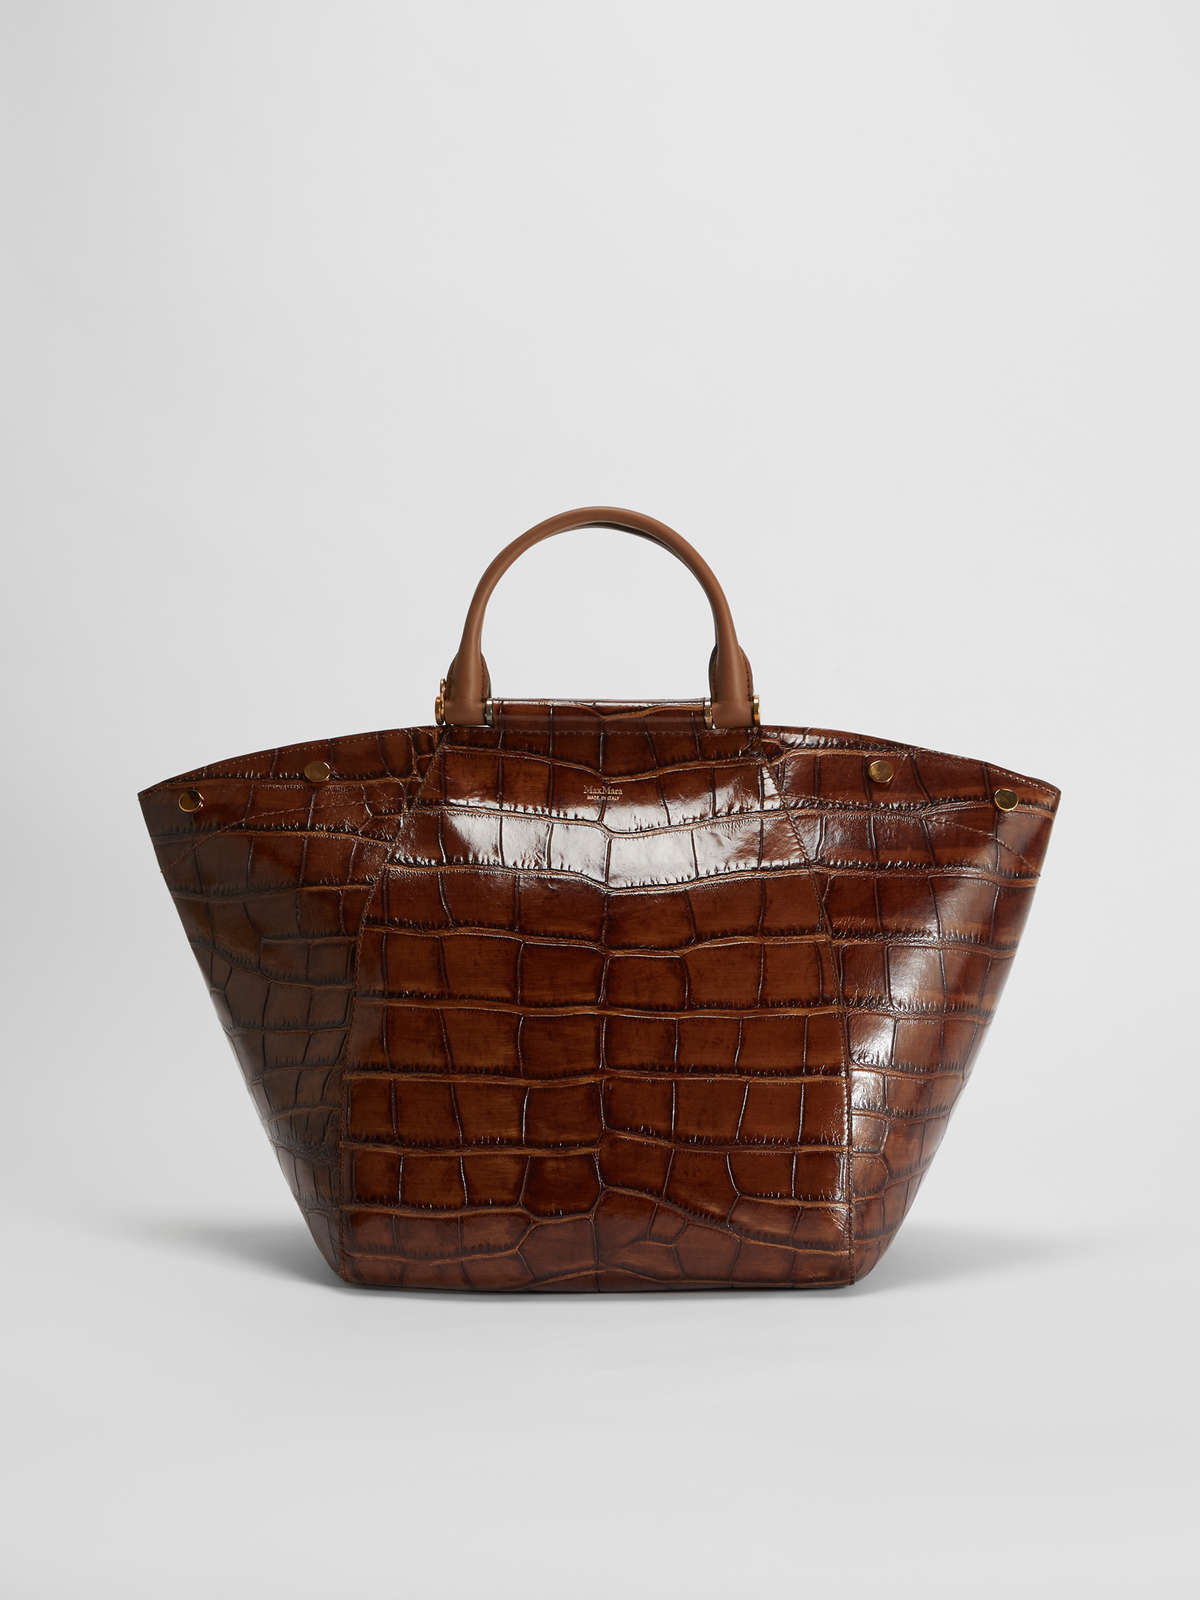 Crocodile print leather bag - Max Mara